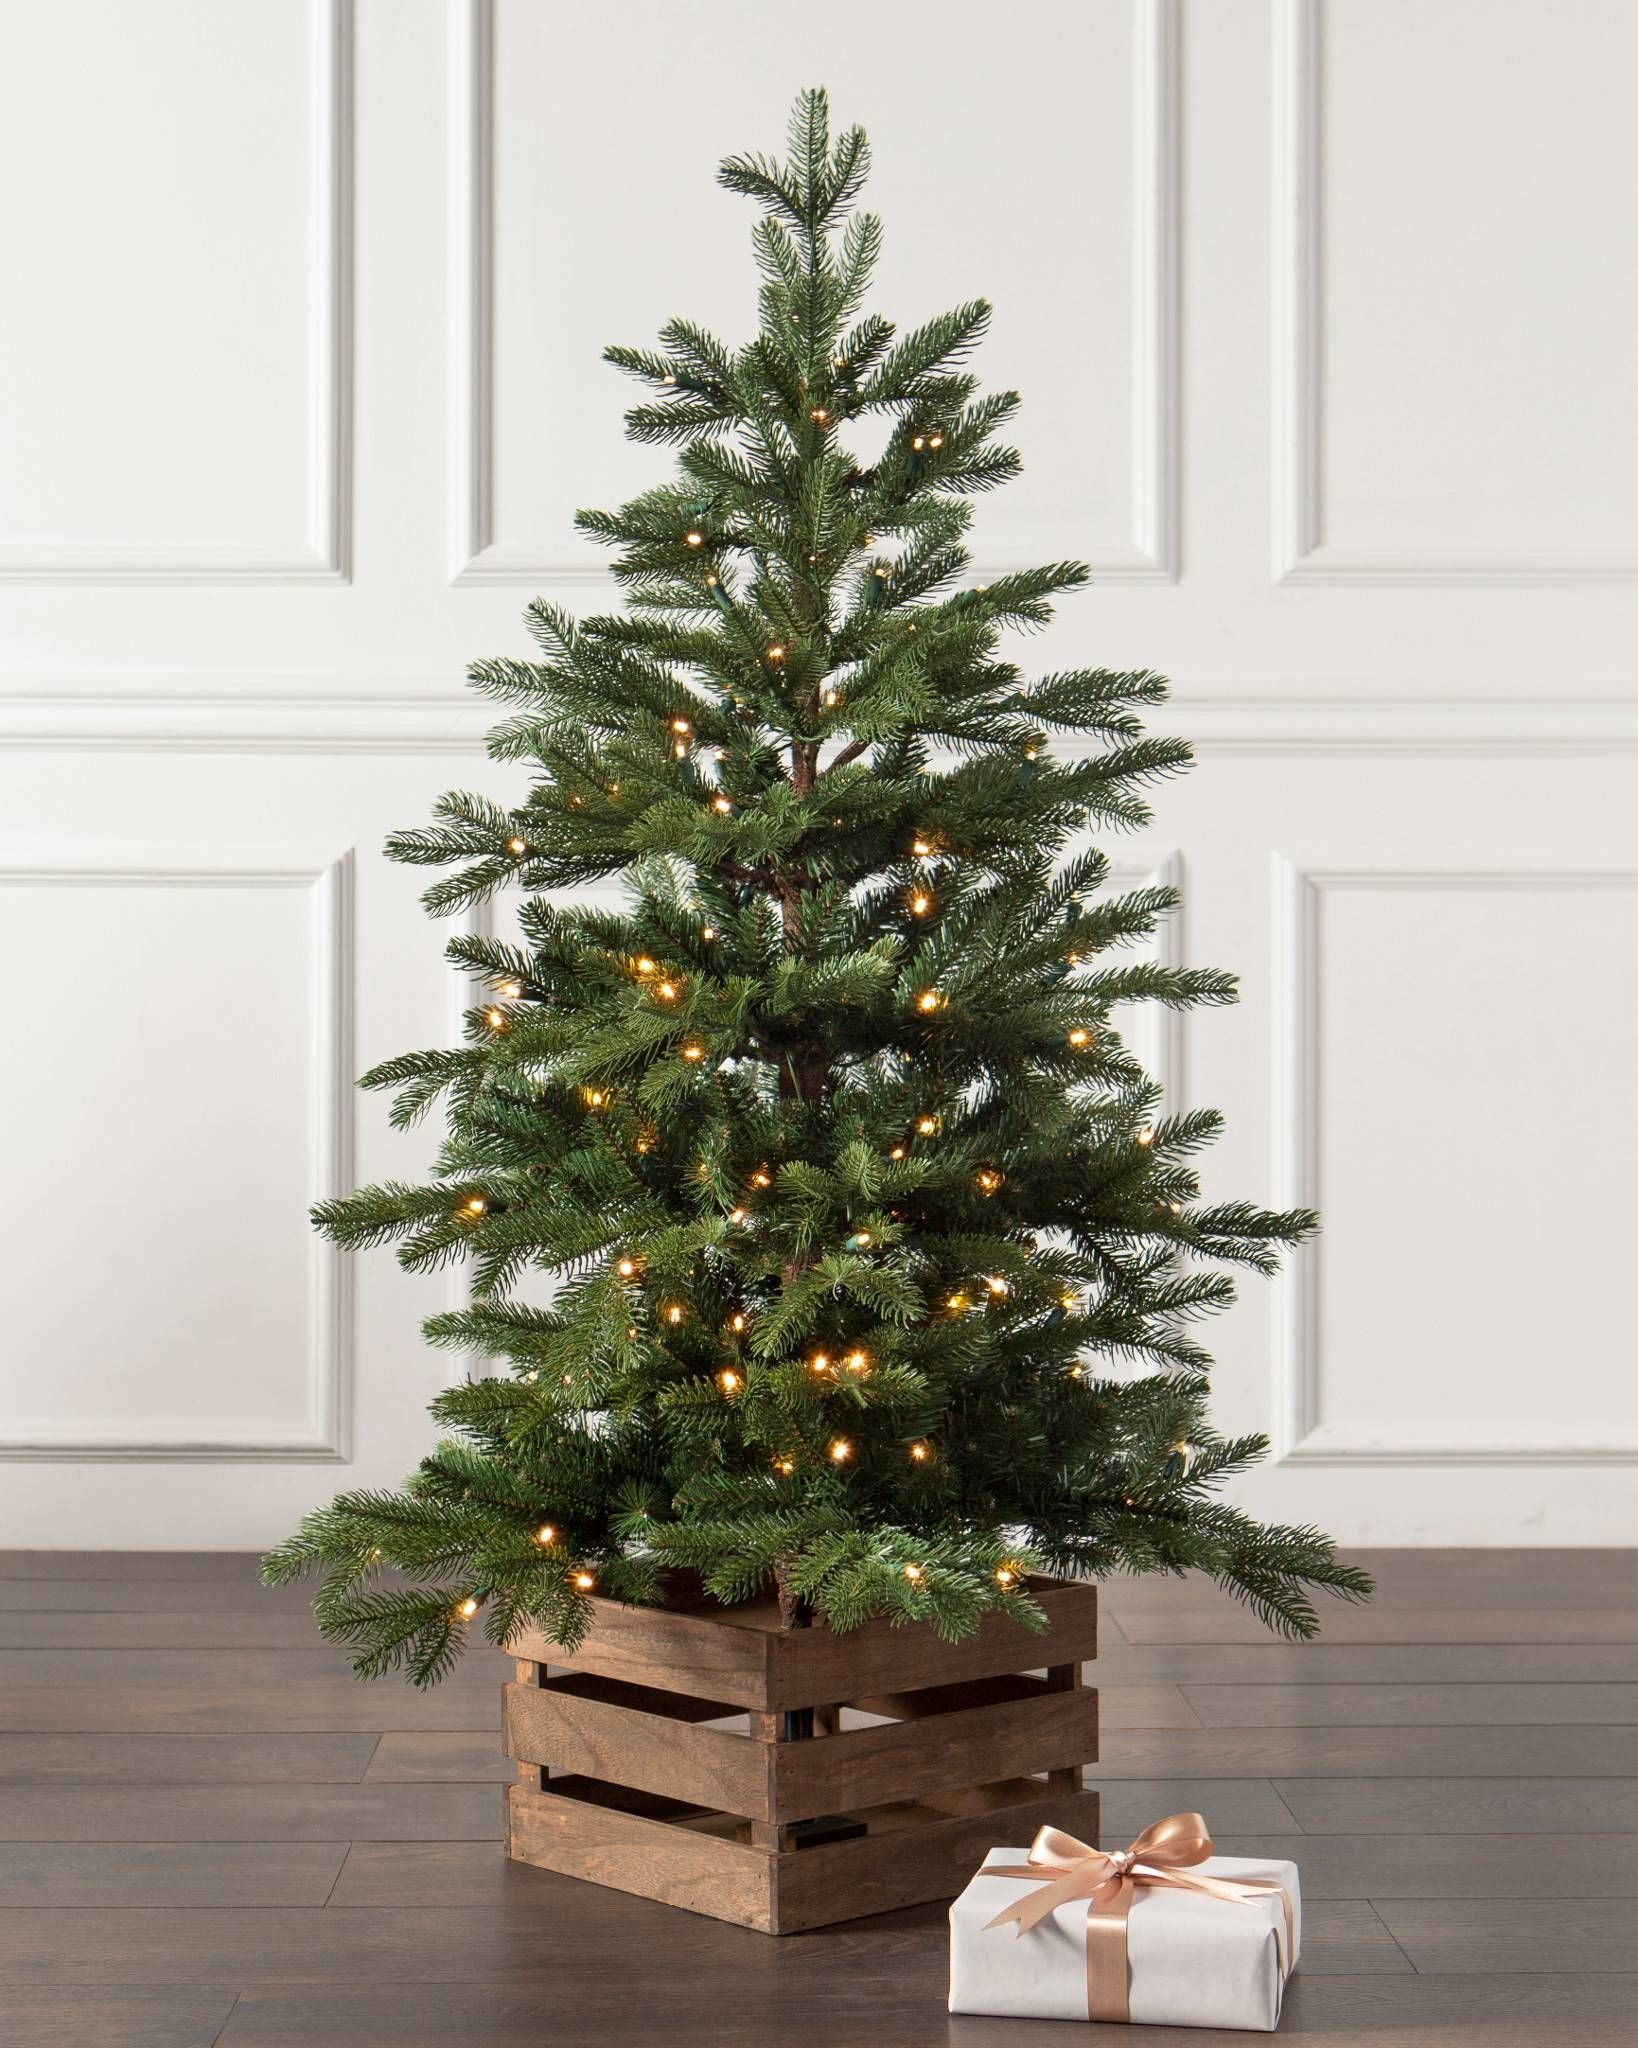 Country Farm Fir Mini Christmas Potted Tree Balsam Hill Potted Christmas Trees Country Christmas Trees Fir Christmas Tree